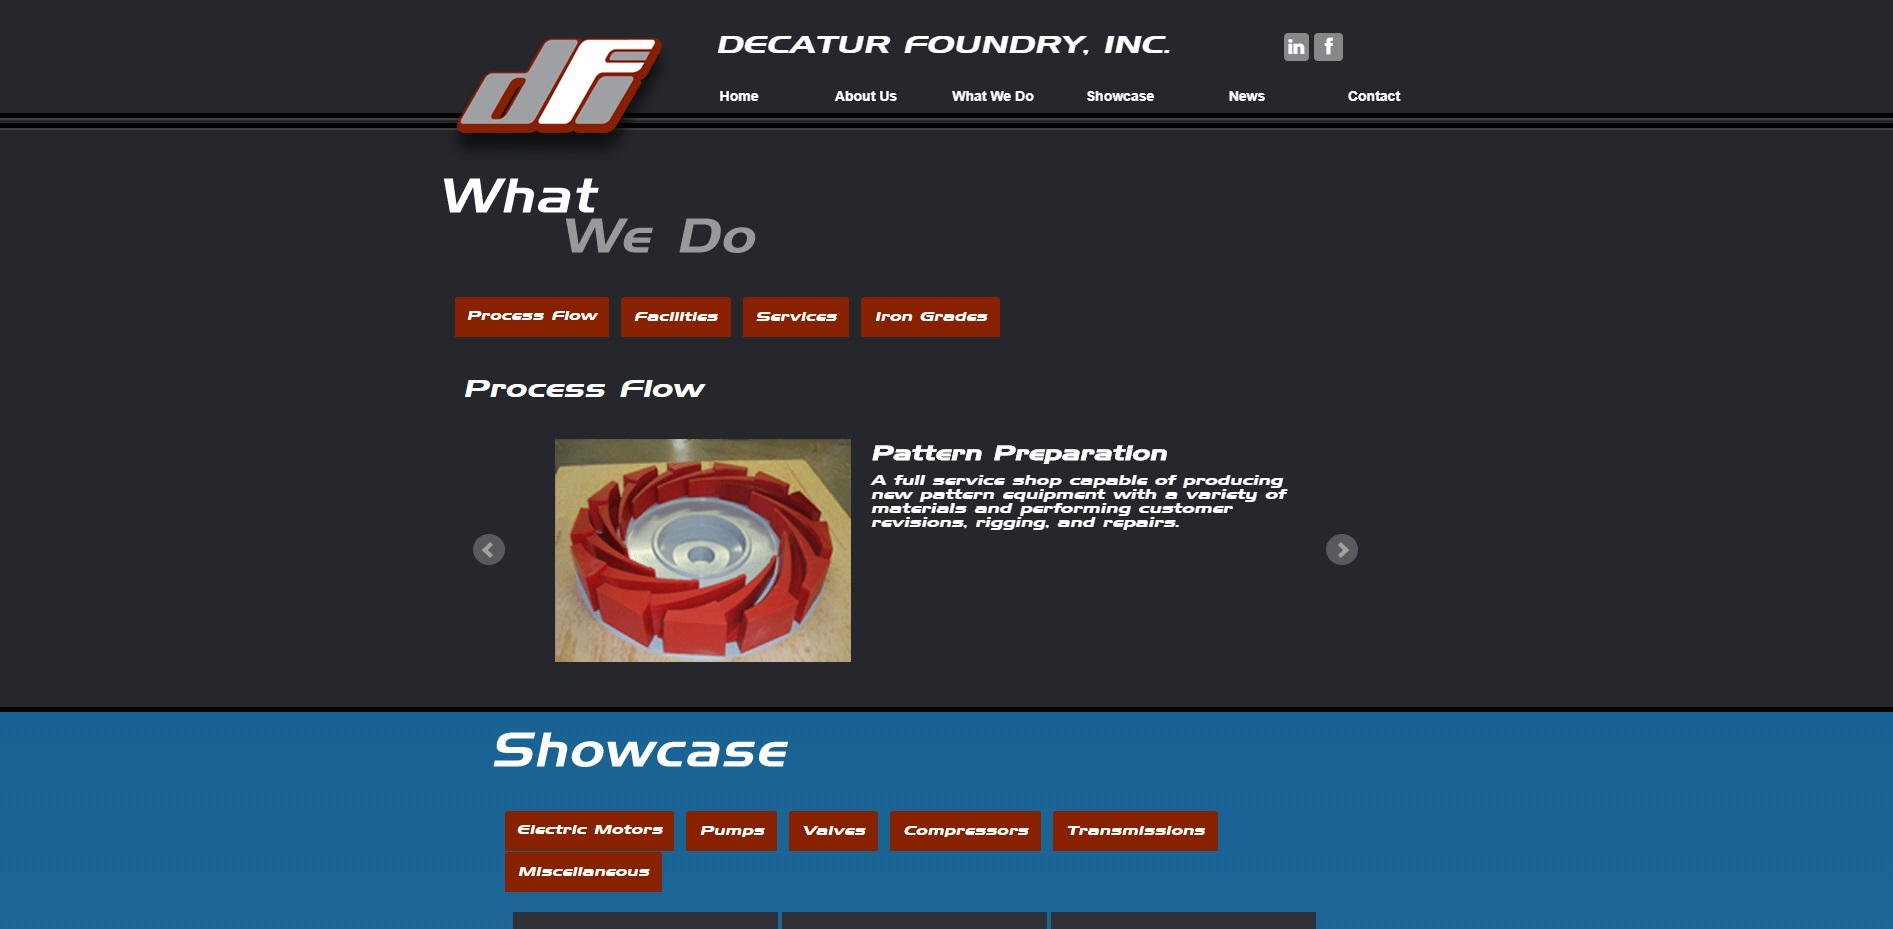 Decatur Foundry, Inc.